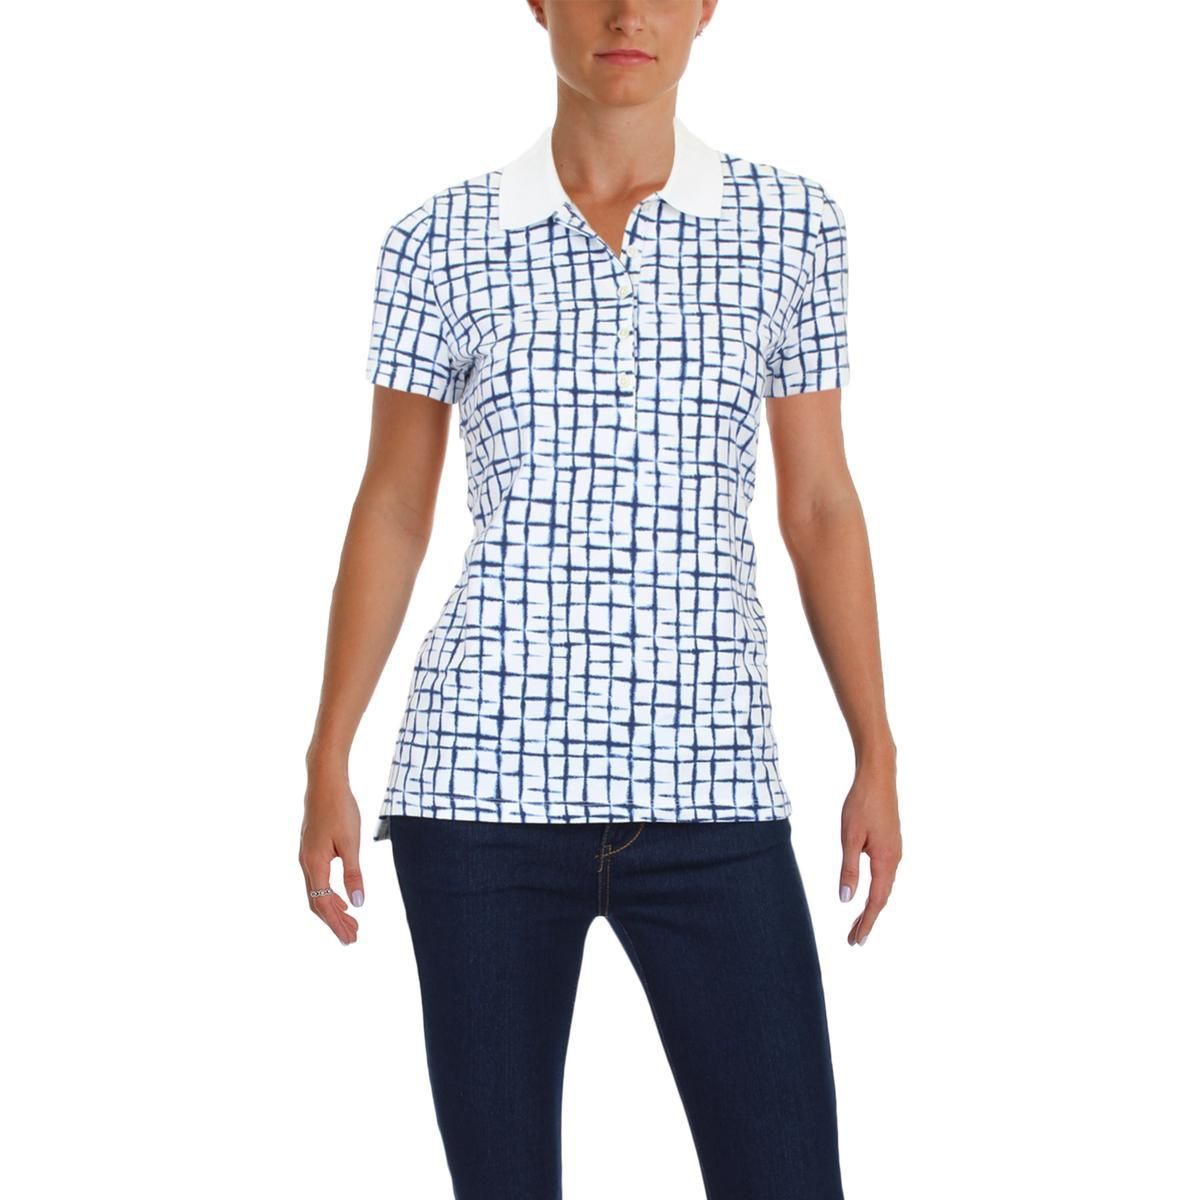 28c434641 Lyst - Tommy Hilfiger Knit Printed Polo Top in Blue